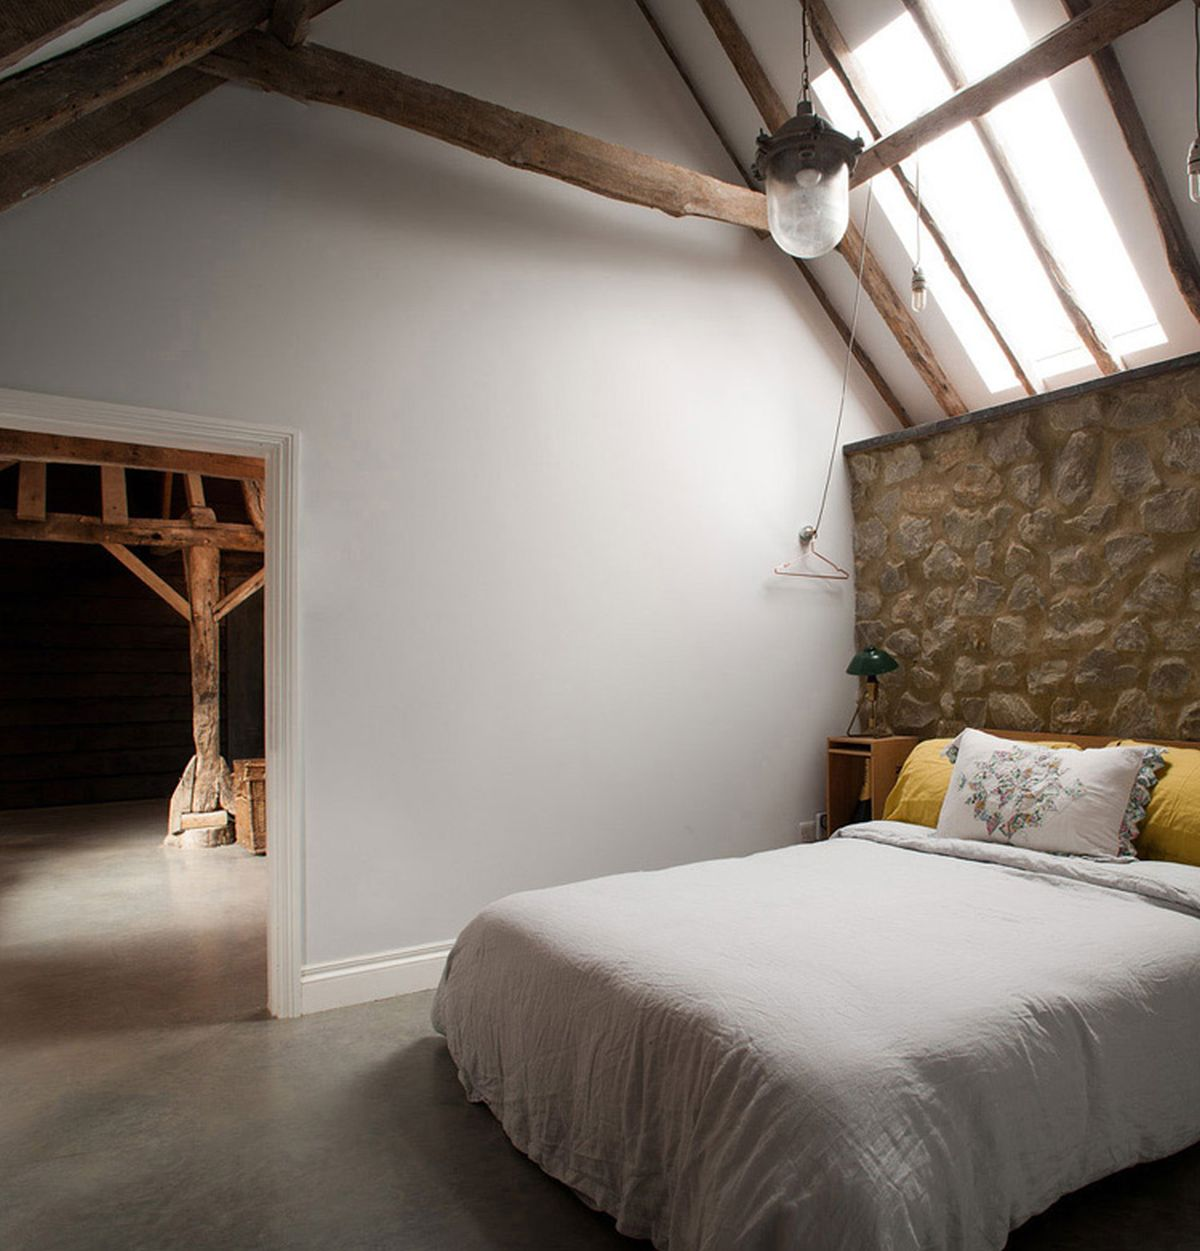 The Ancient Party Barn conversion bedroom interior